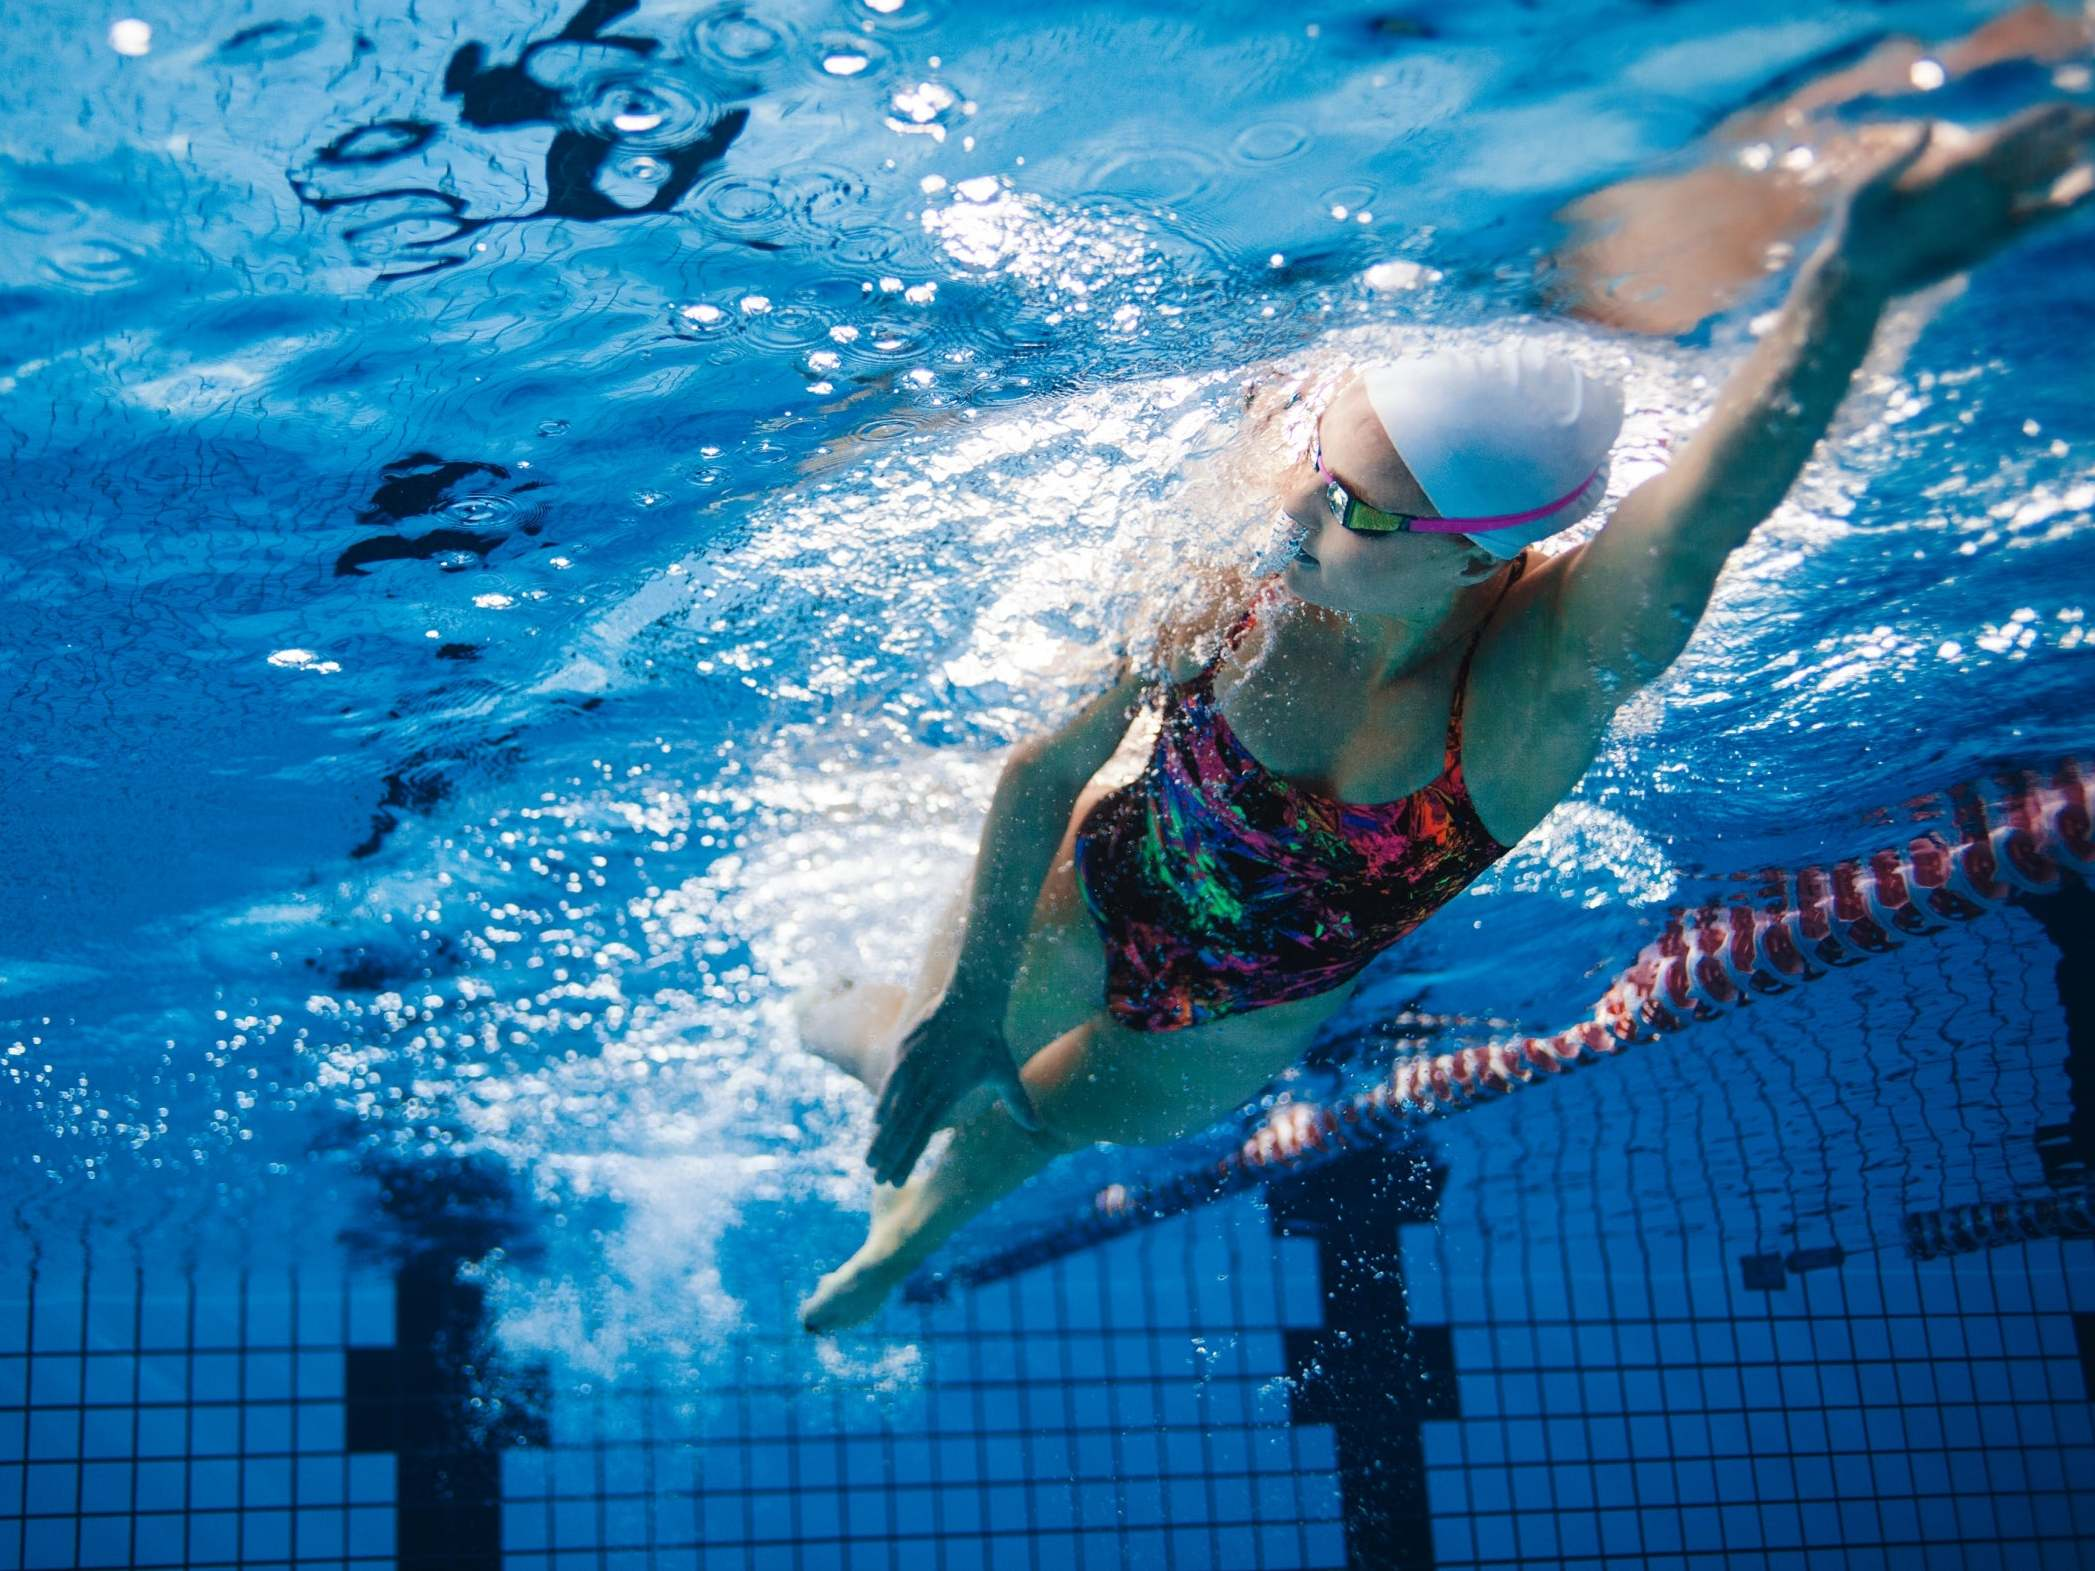 Does swimming really make you feel hungrier?